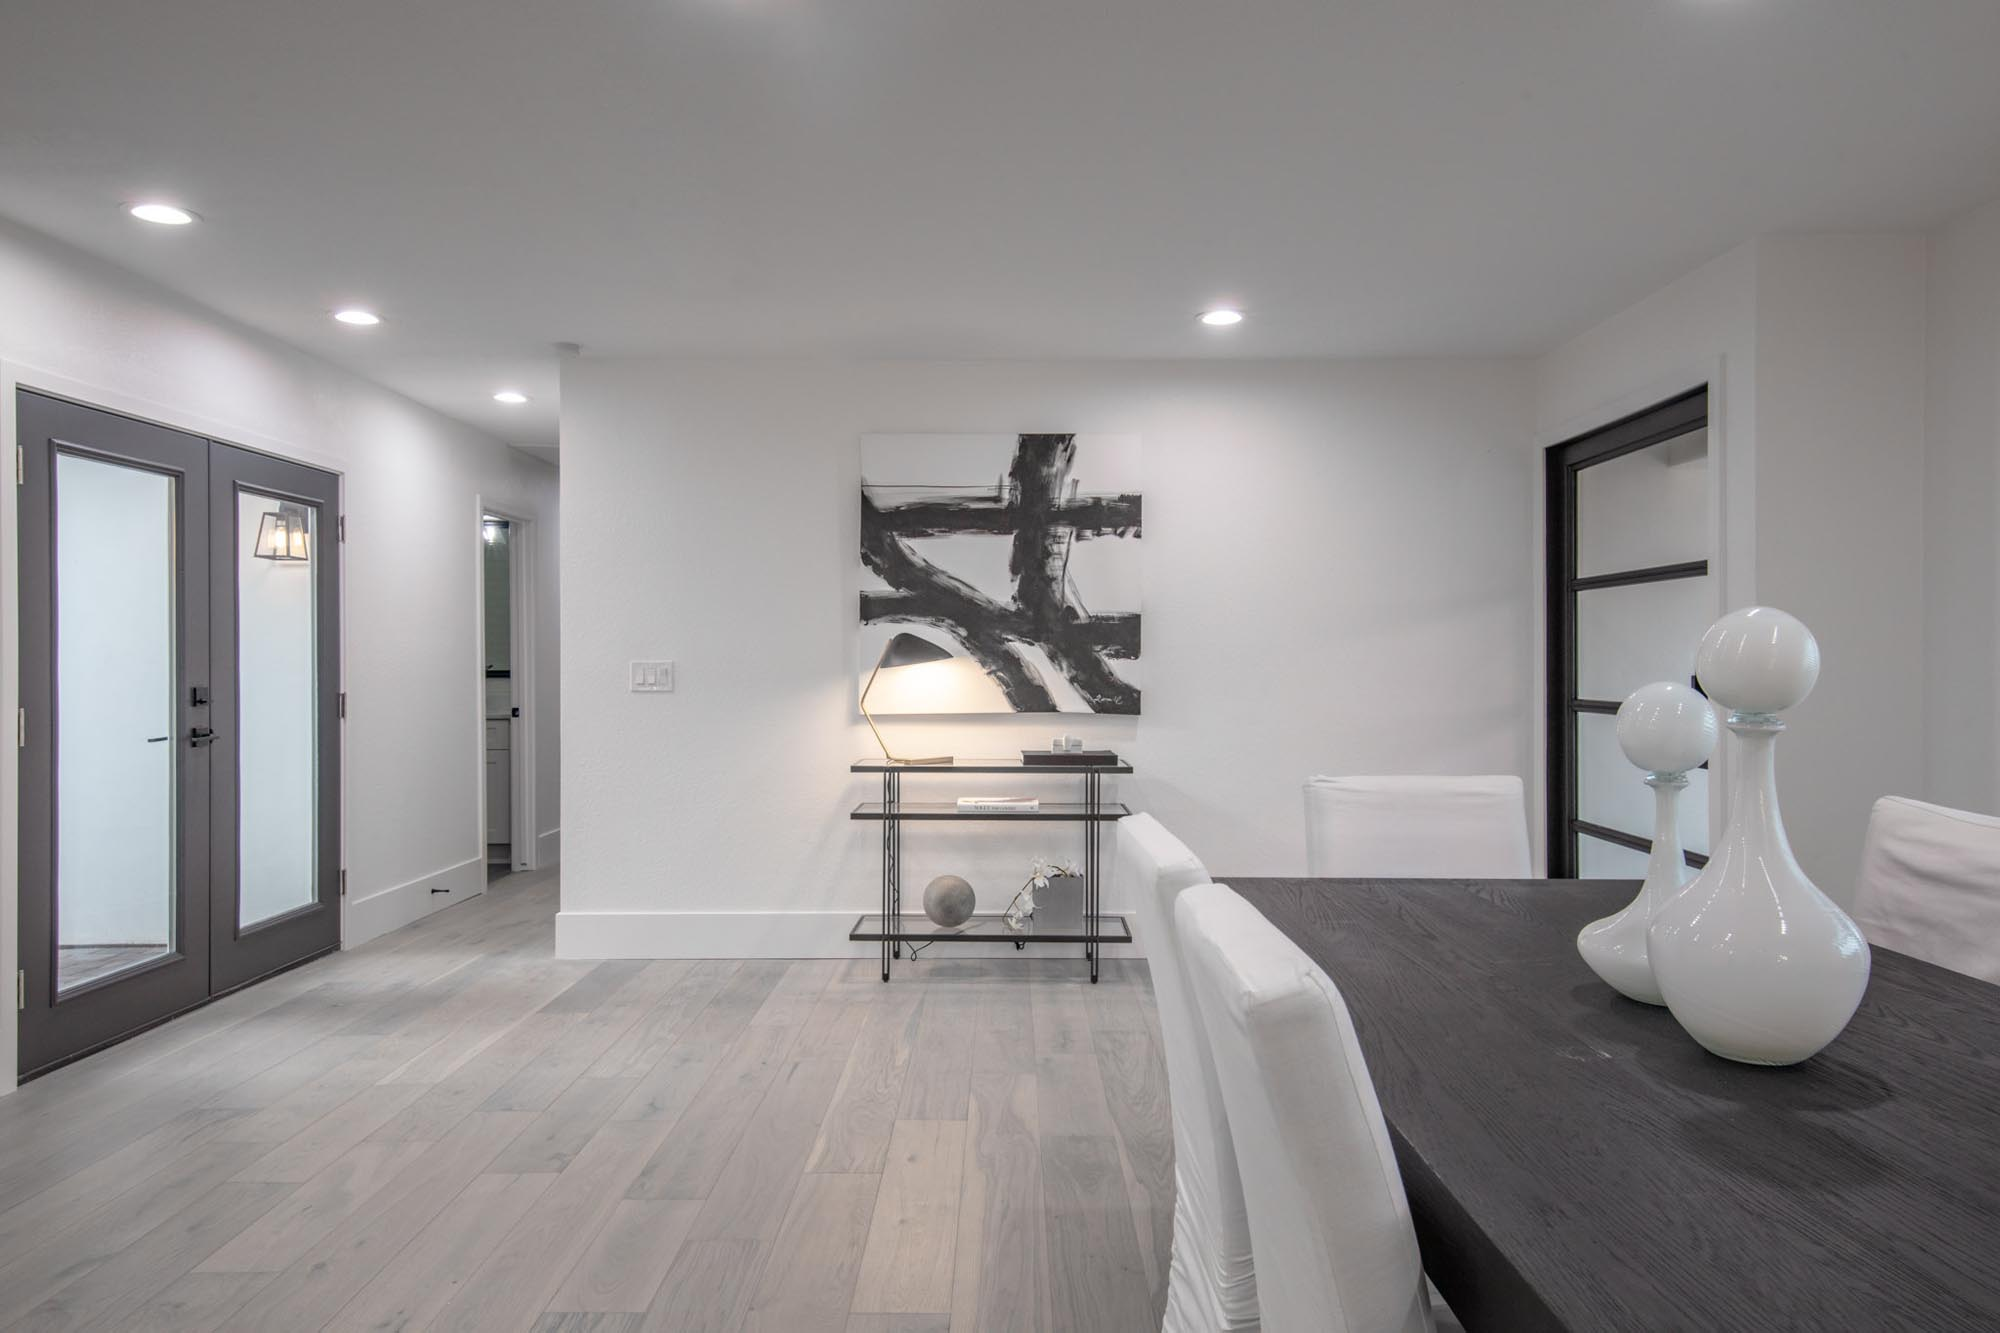 White painted room with abstract painting and shelves